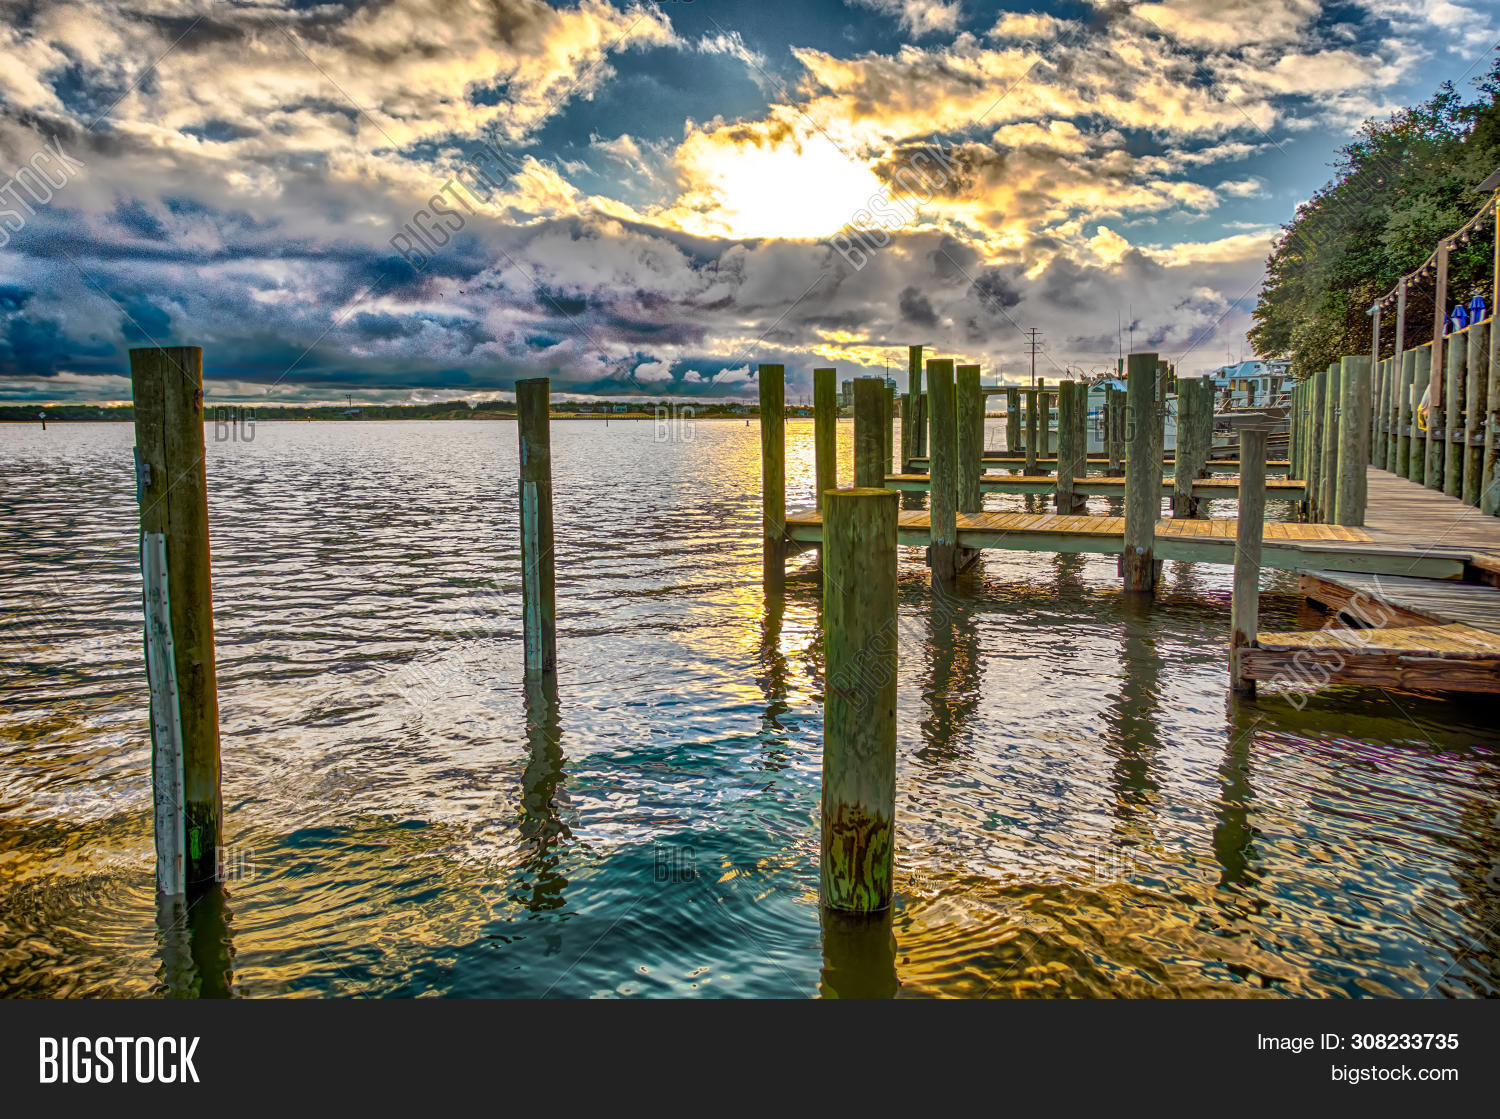 amazing,atlantic,bar,bay,boardwalk,bridge,building,chesapeake,clouds,cloudy,dinner,eats,fish,food,fort,house,inlet,island,lynnhaven,nature,norfolk,ocean,oysters,picnic,pier,restaurant,river,story,sun,sunset,tables,va,virginia,water,waterfront,waves